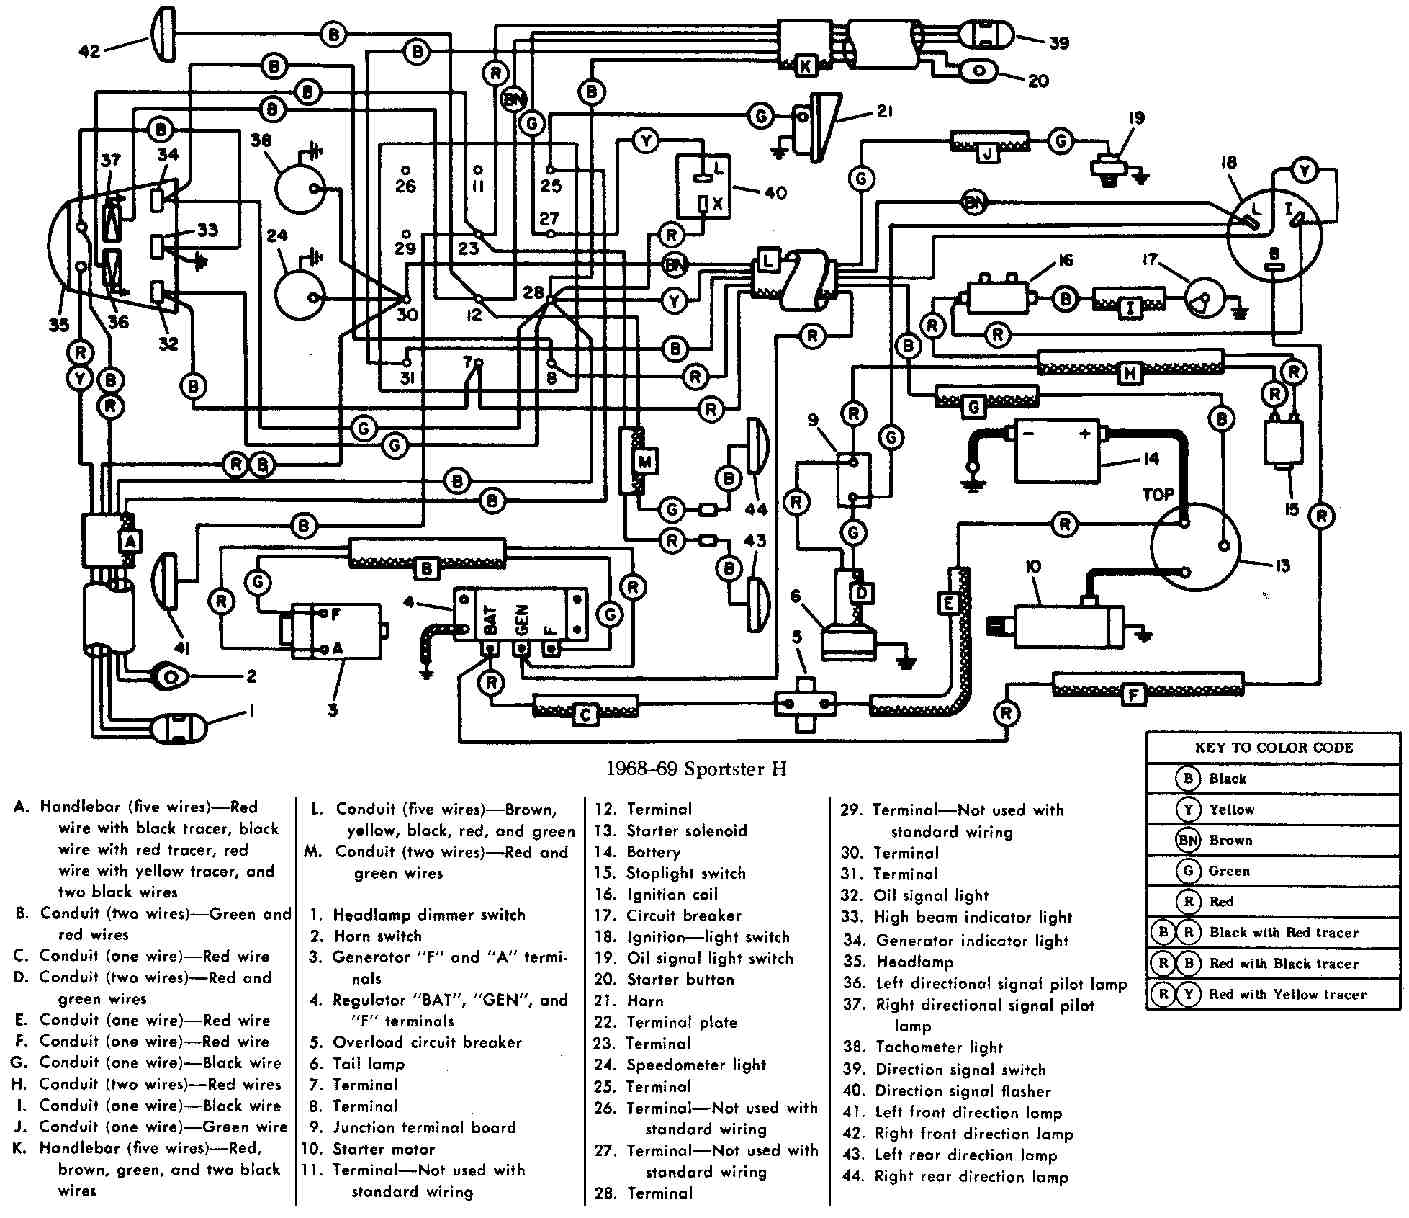 Harley Davidson Sportster 1968 1969 on 1949 ford truck wiring diagram